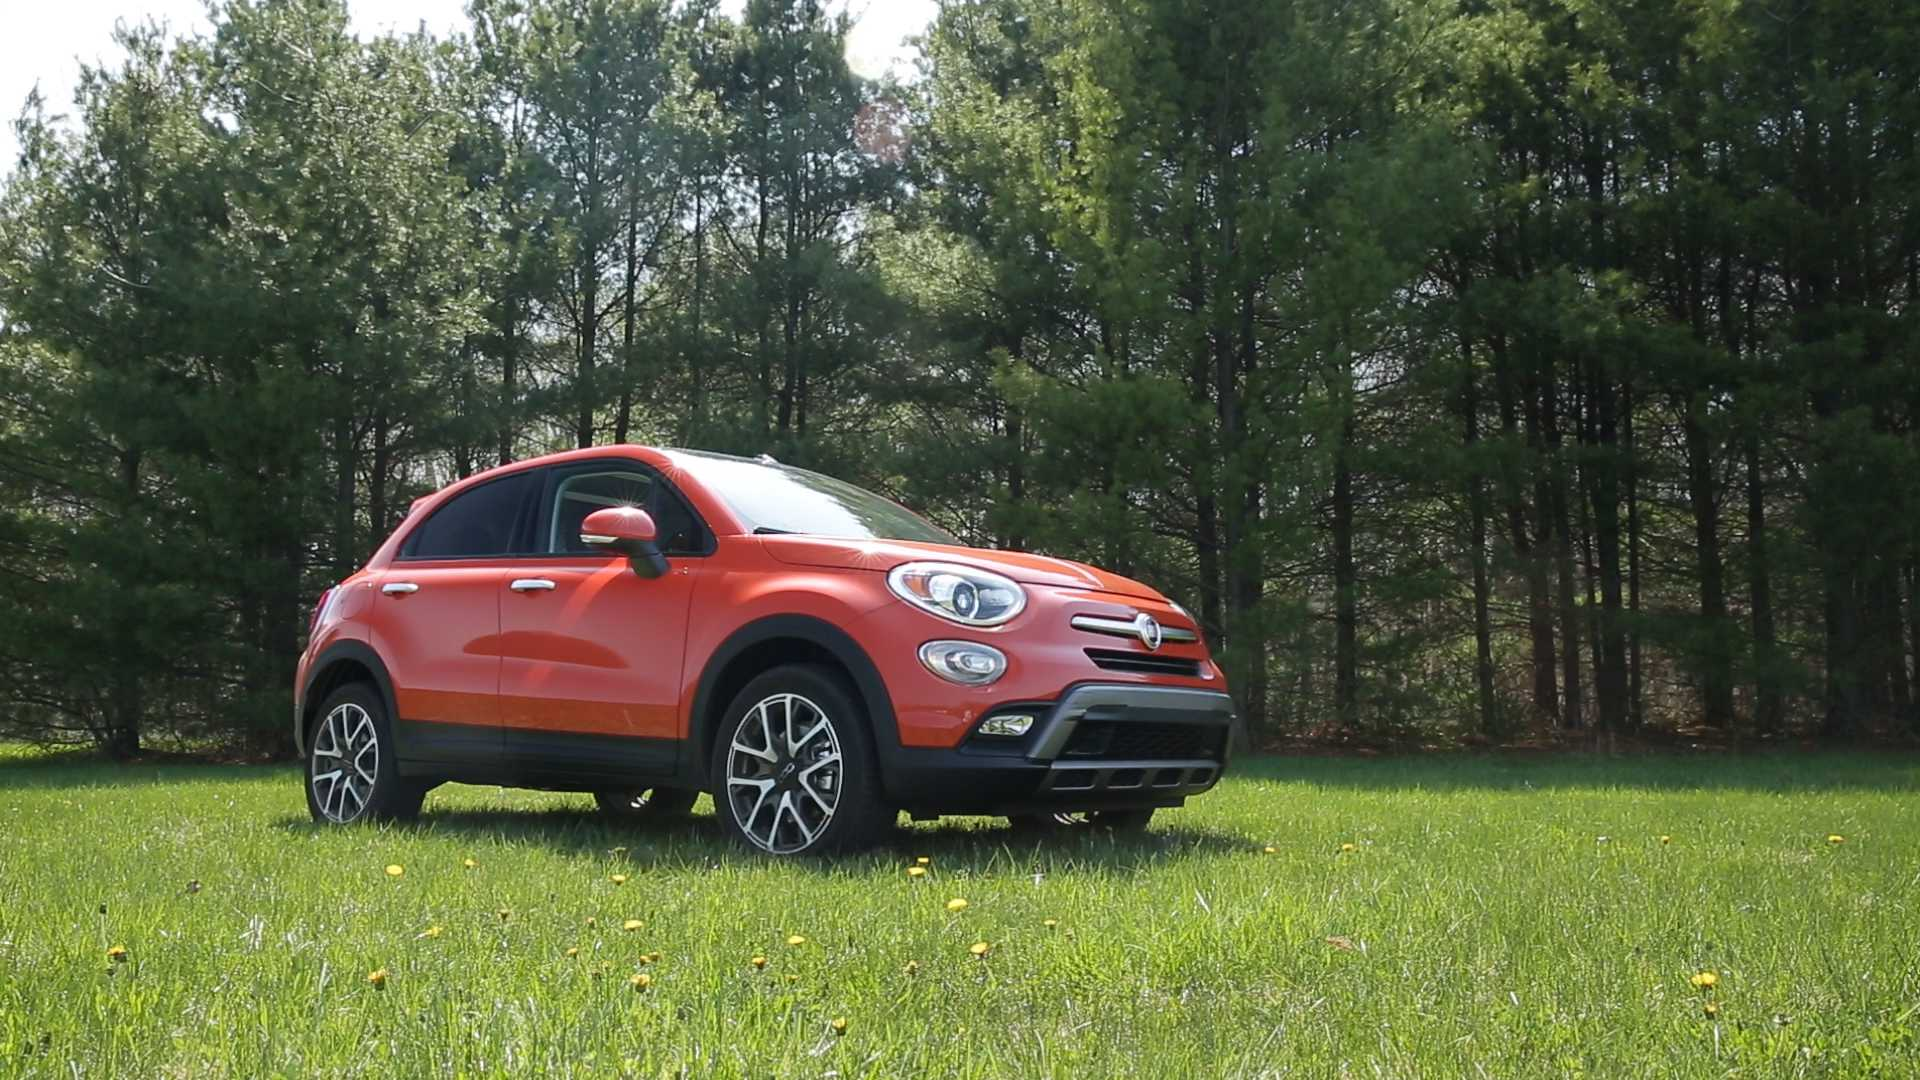 2018 Fiat 500X Reviews Ratings Prices Consumer Reports